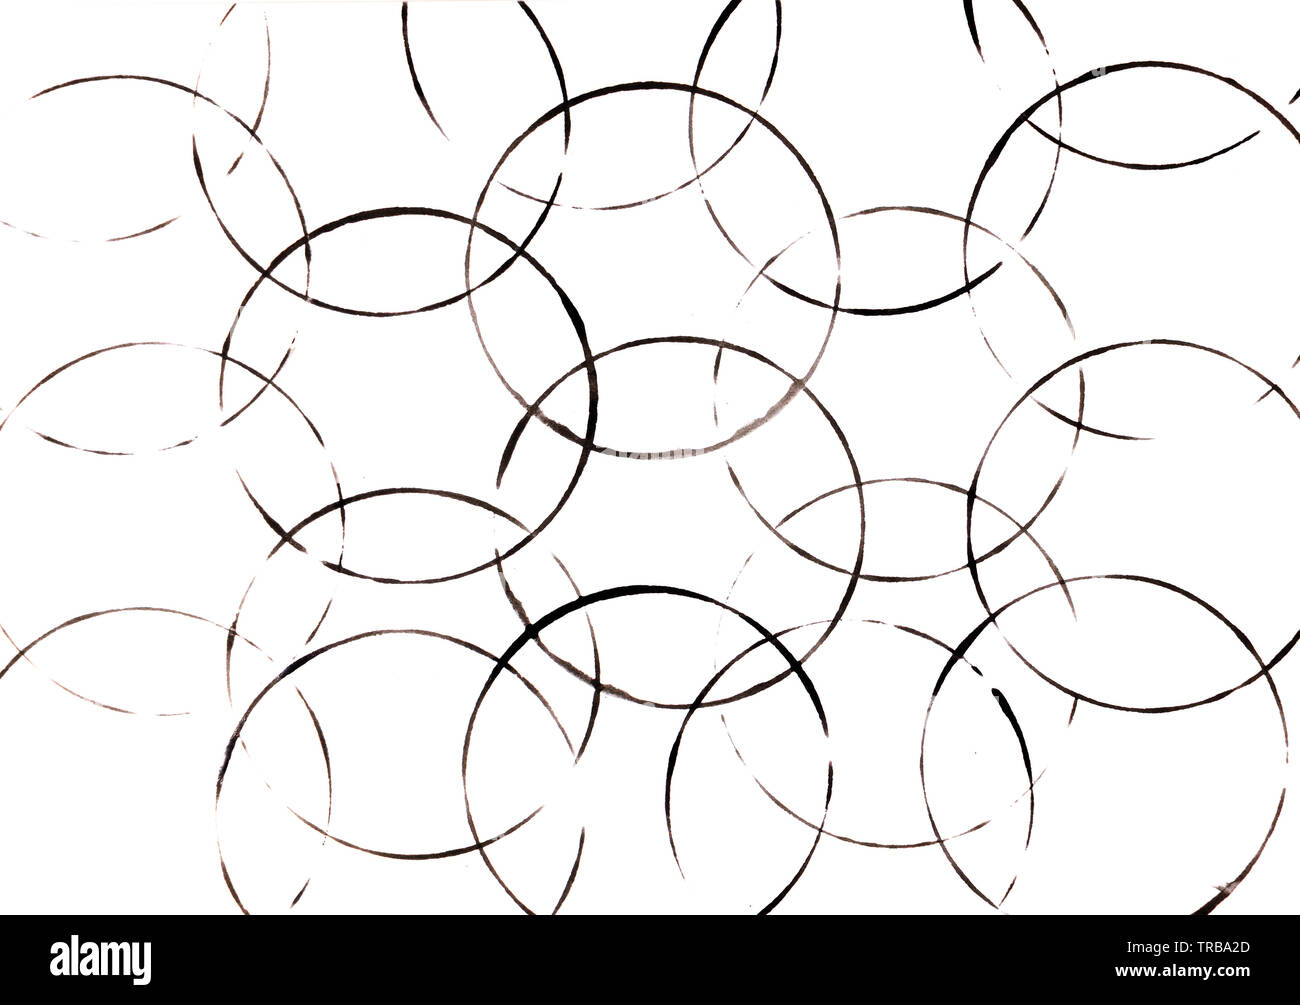 Abstract background of black round bubbles, balls on white background. - Stock Image